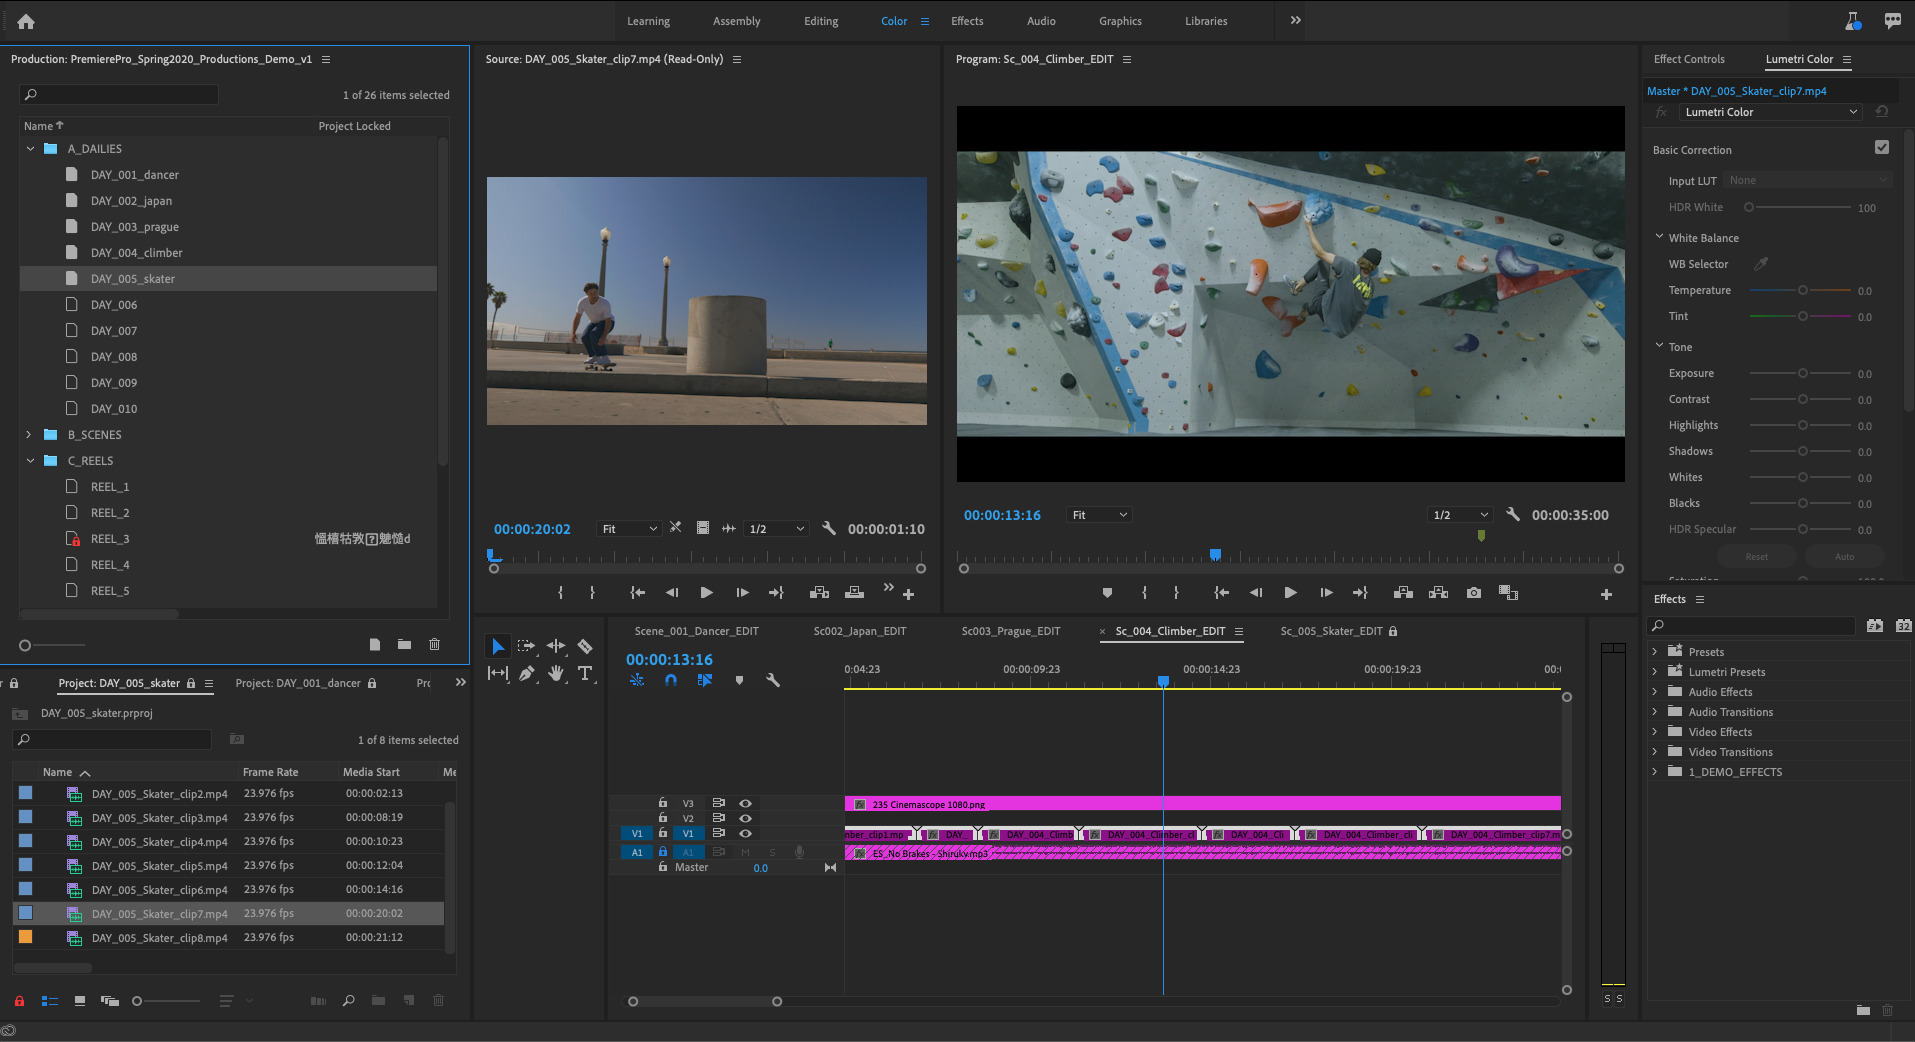 Adobe Premiere Pro Productions in the full interface